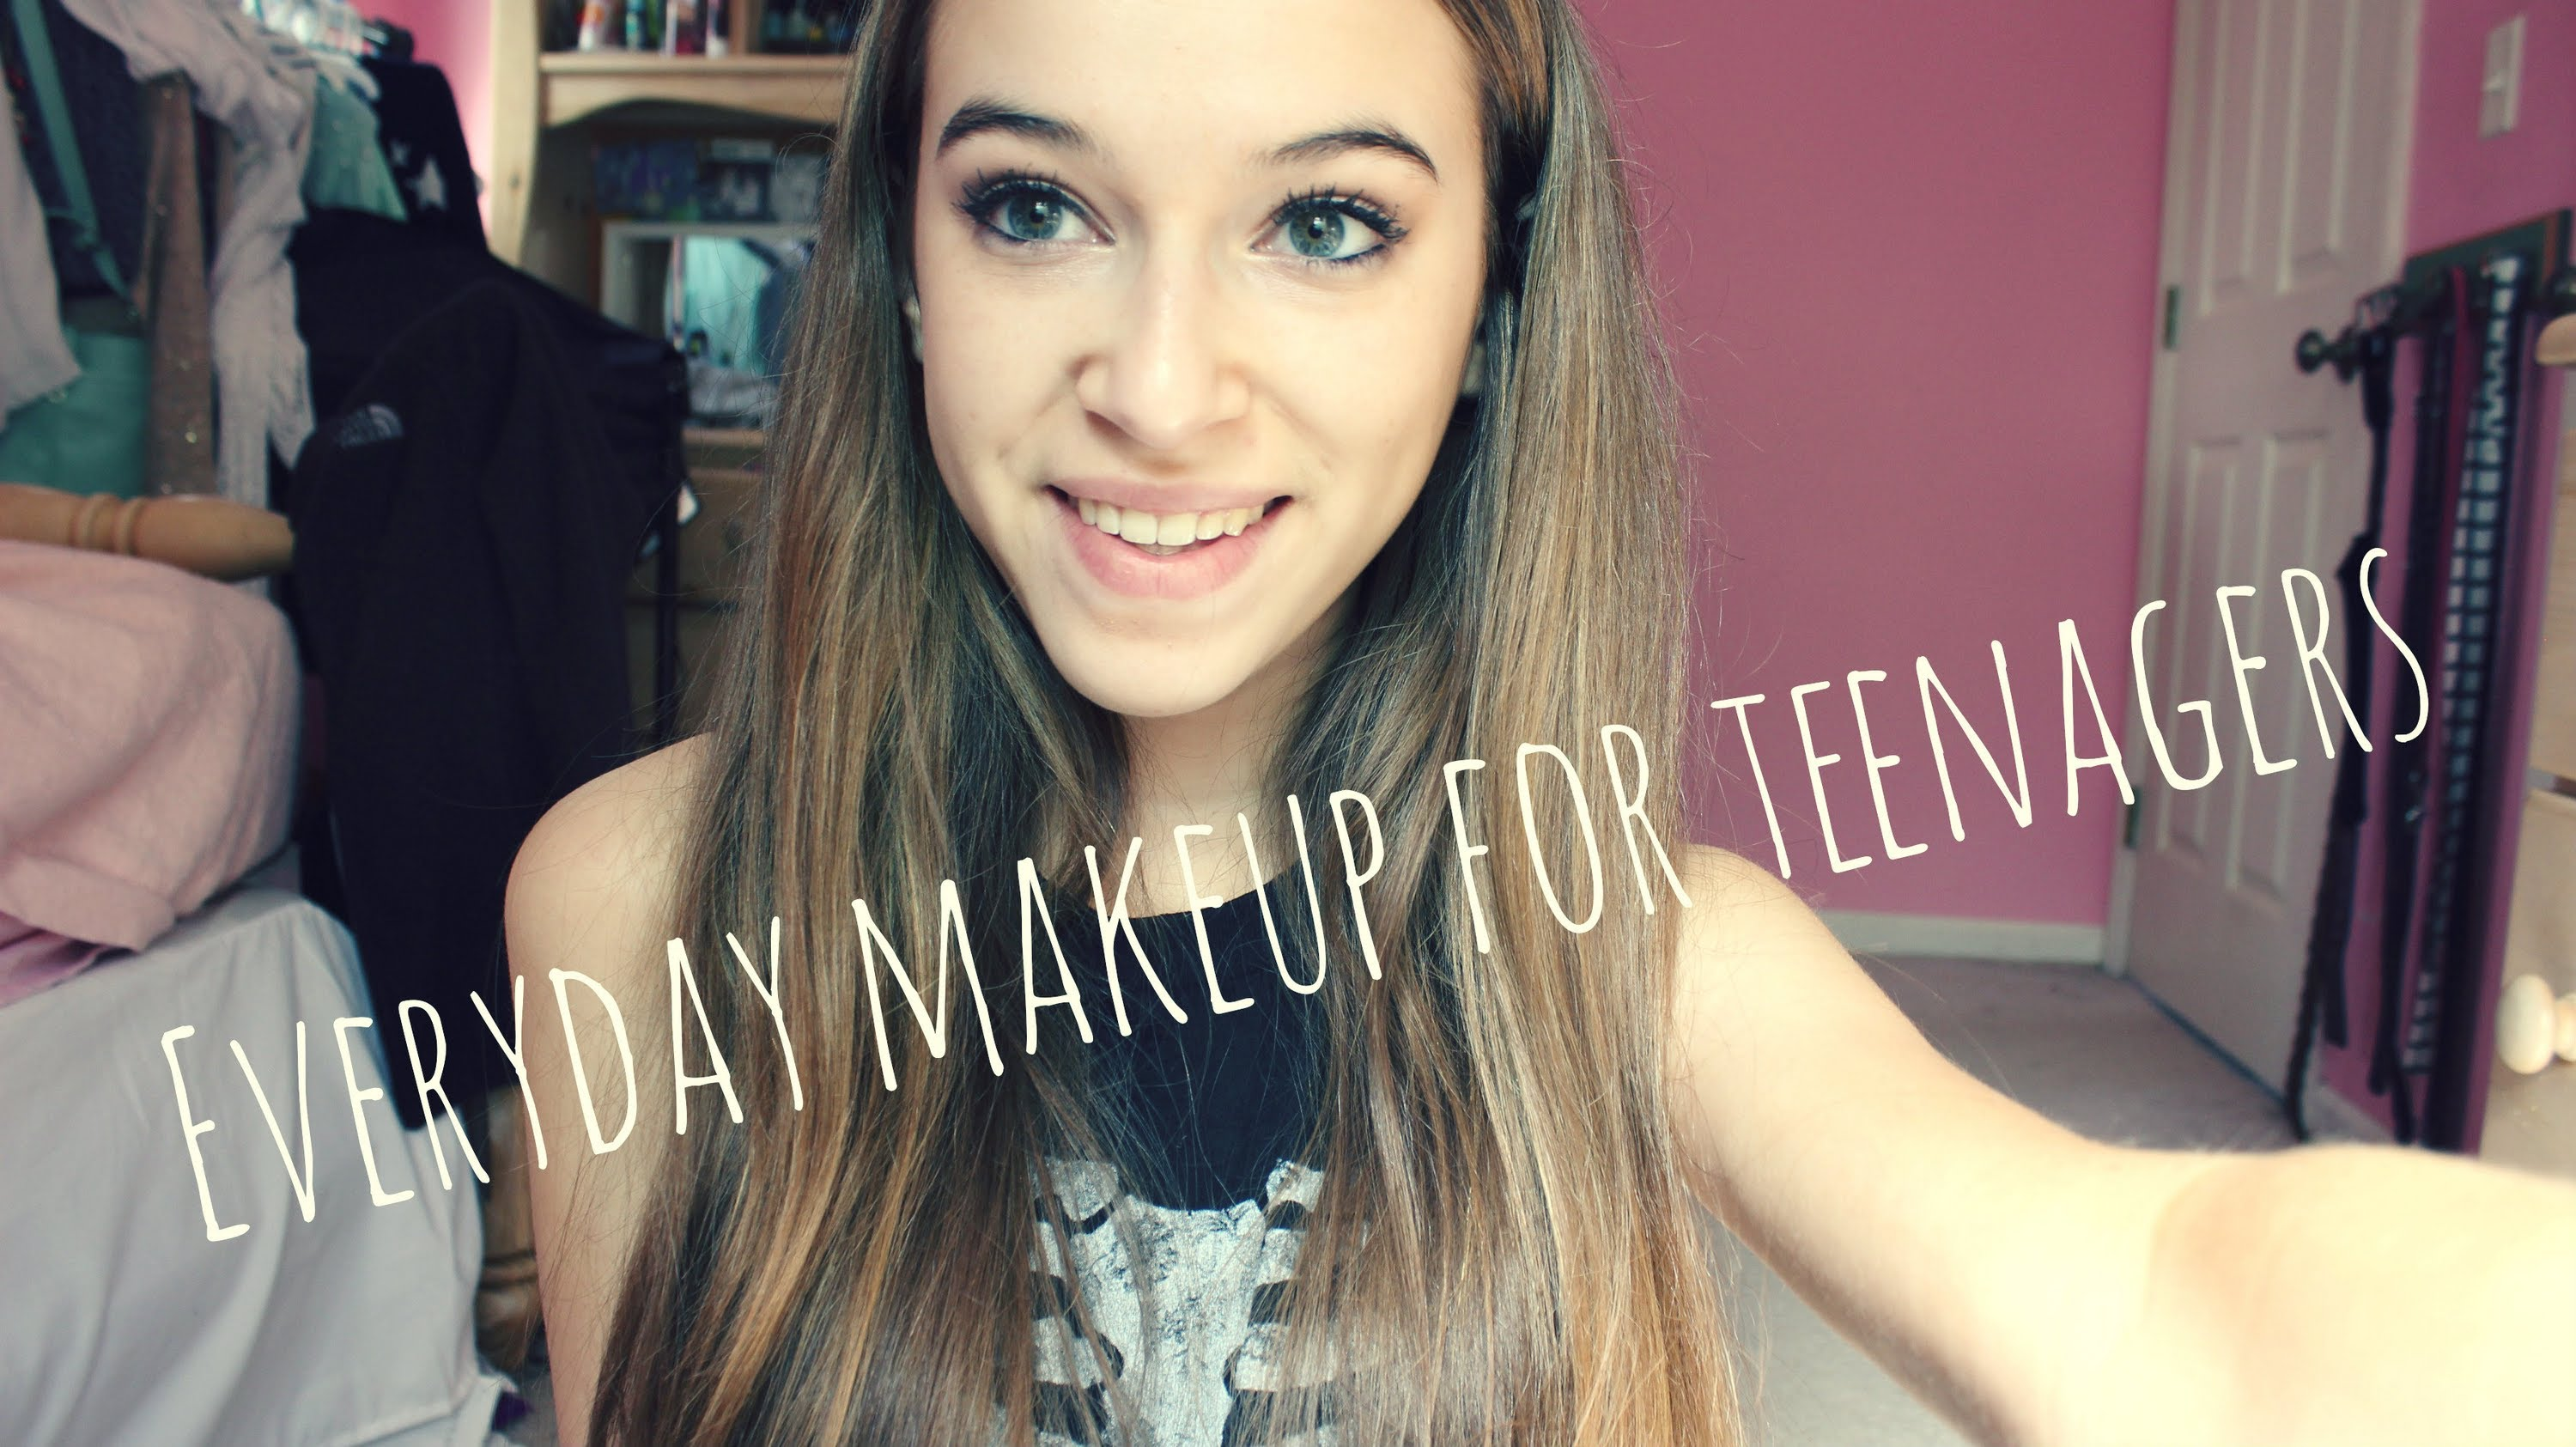 Everyday Neutral Makeup for teenagers!